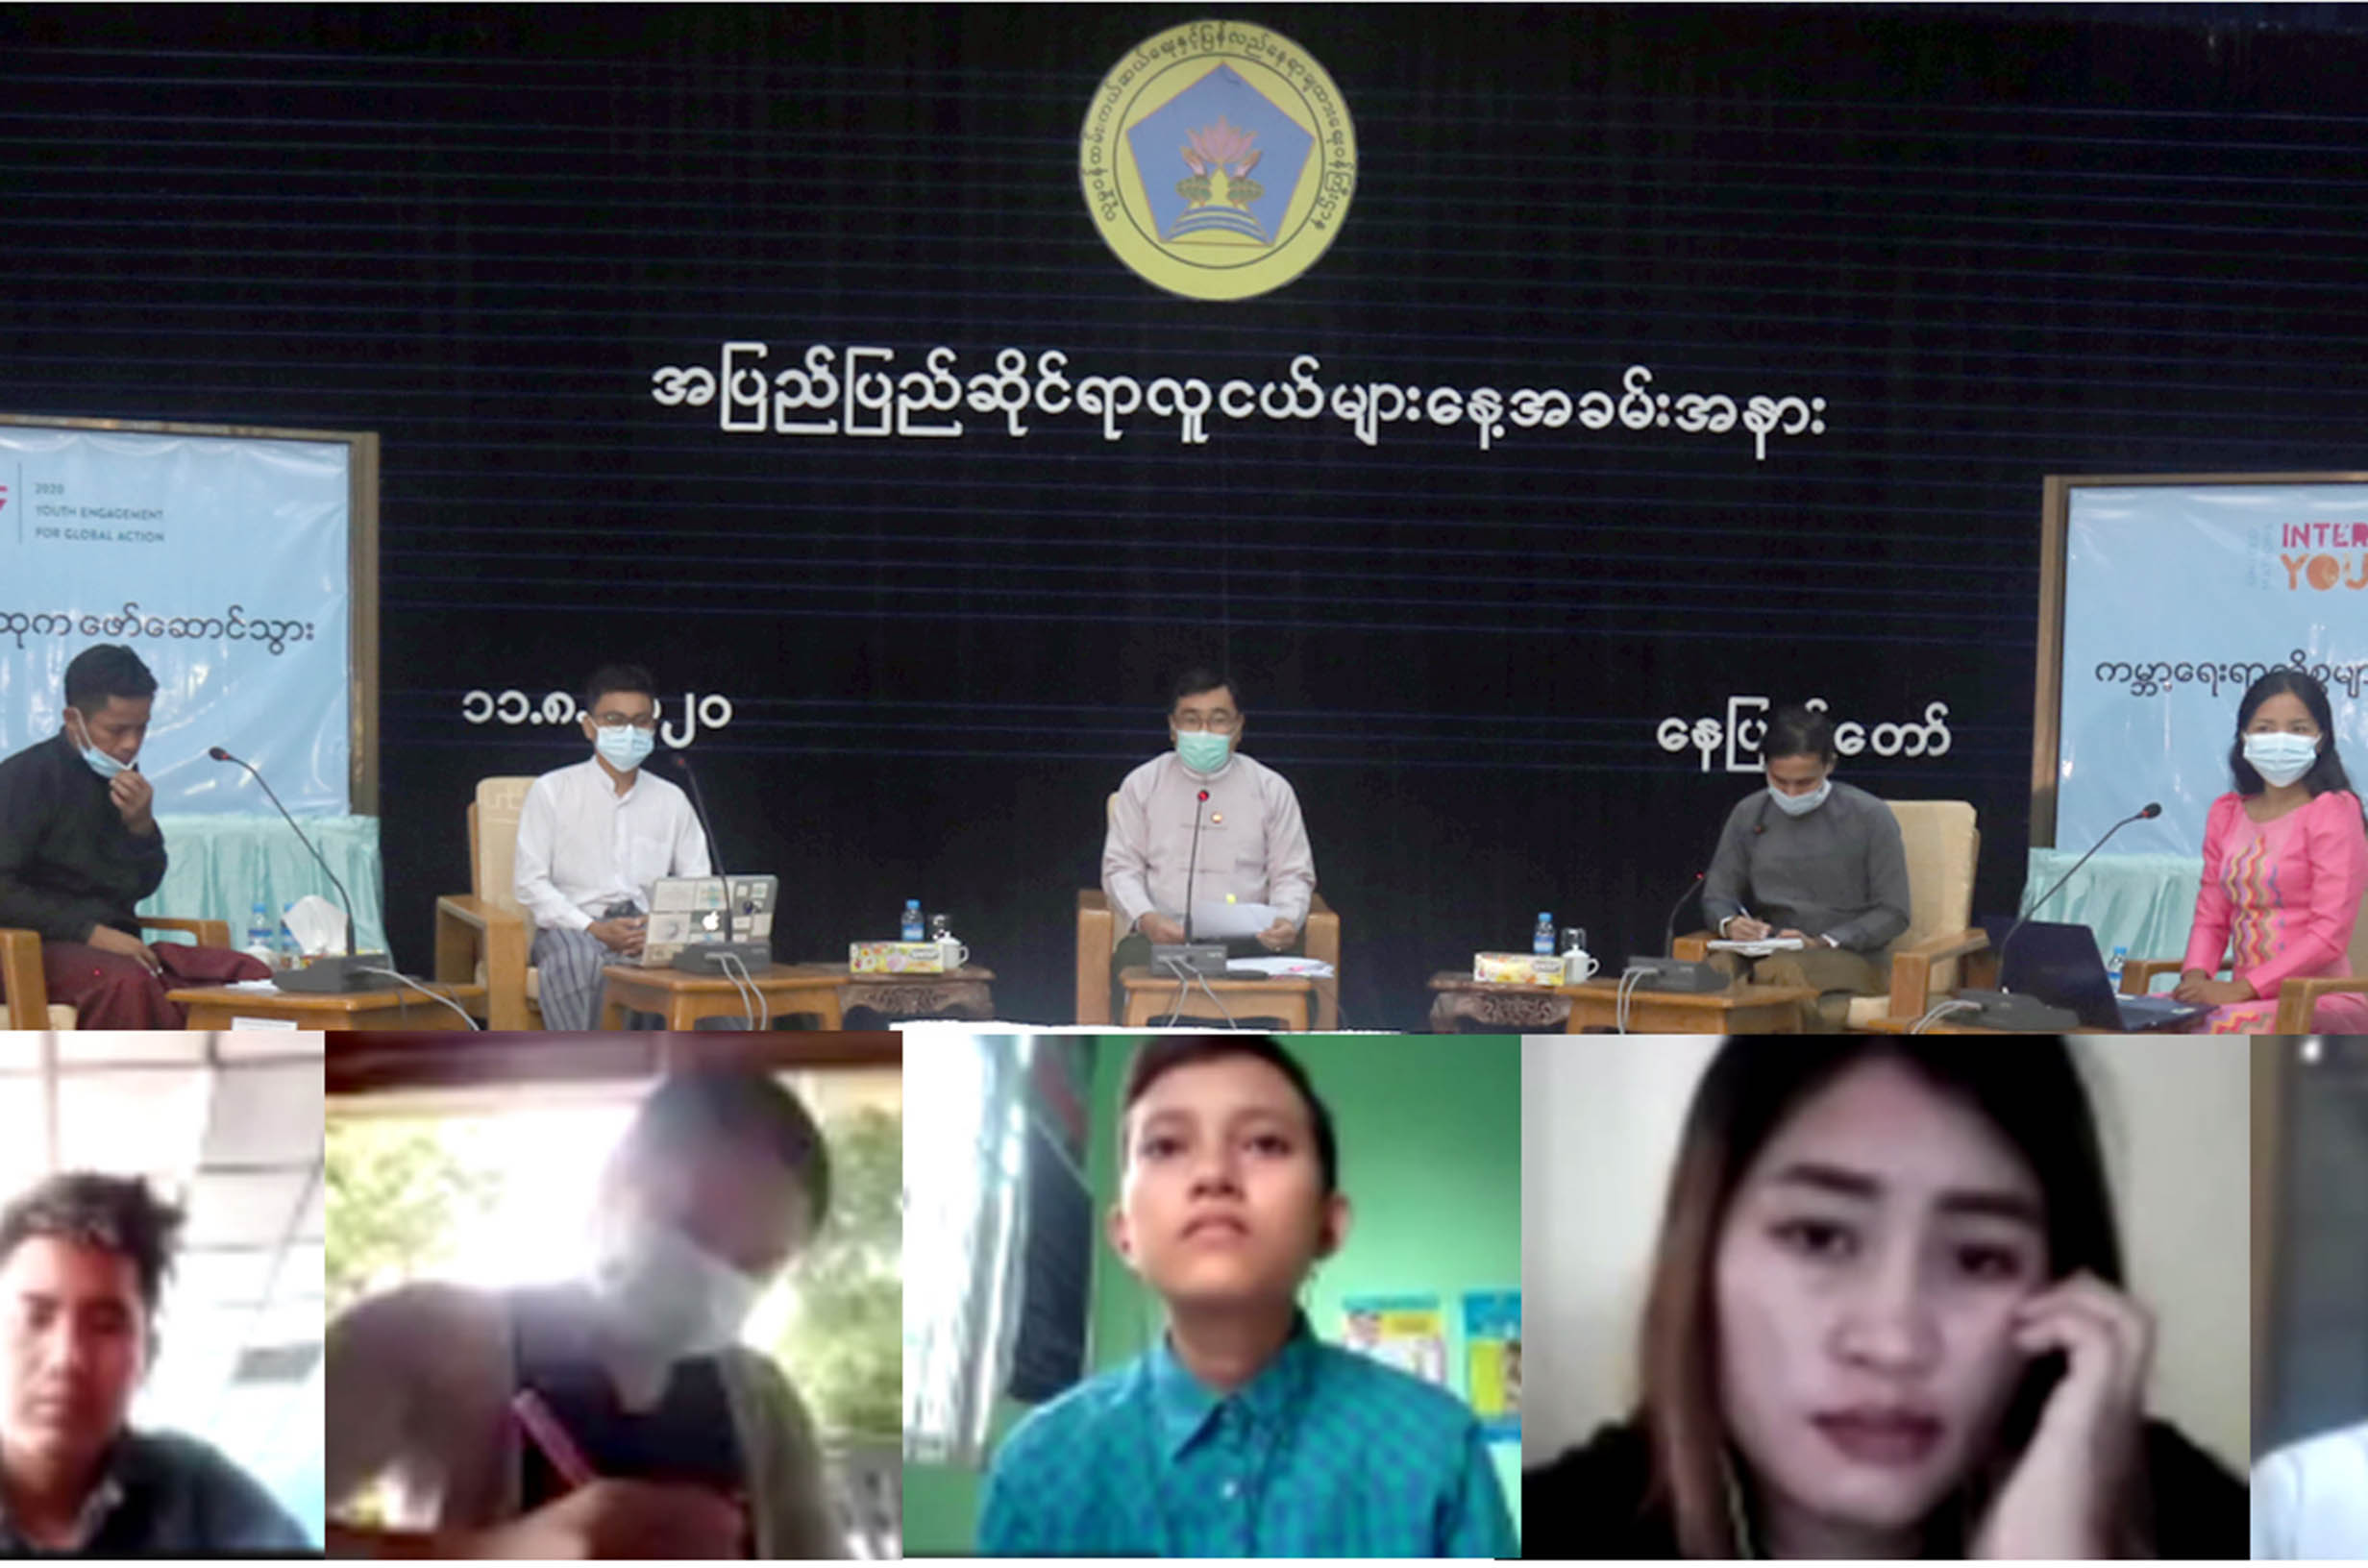 Union Minister Dr Win Myat Aye and youths participate in online panel discussion on 11 August to mark the International Youth Day 2020 .  Photo: MNA